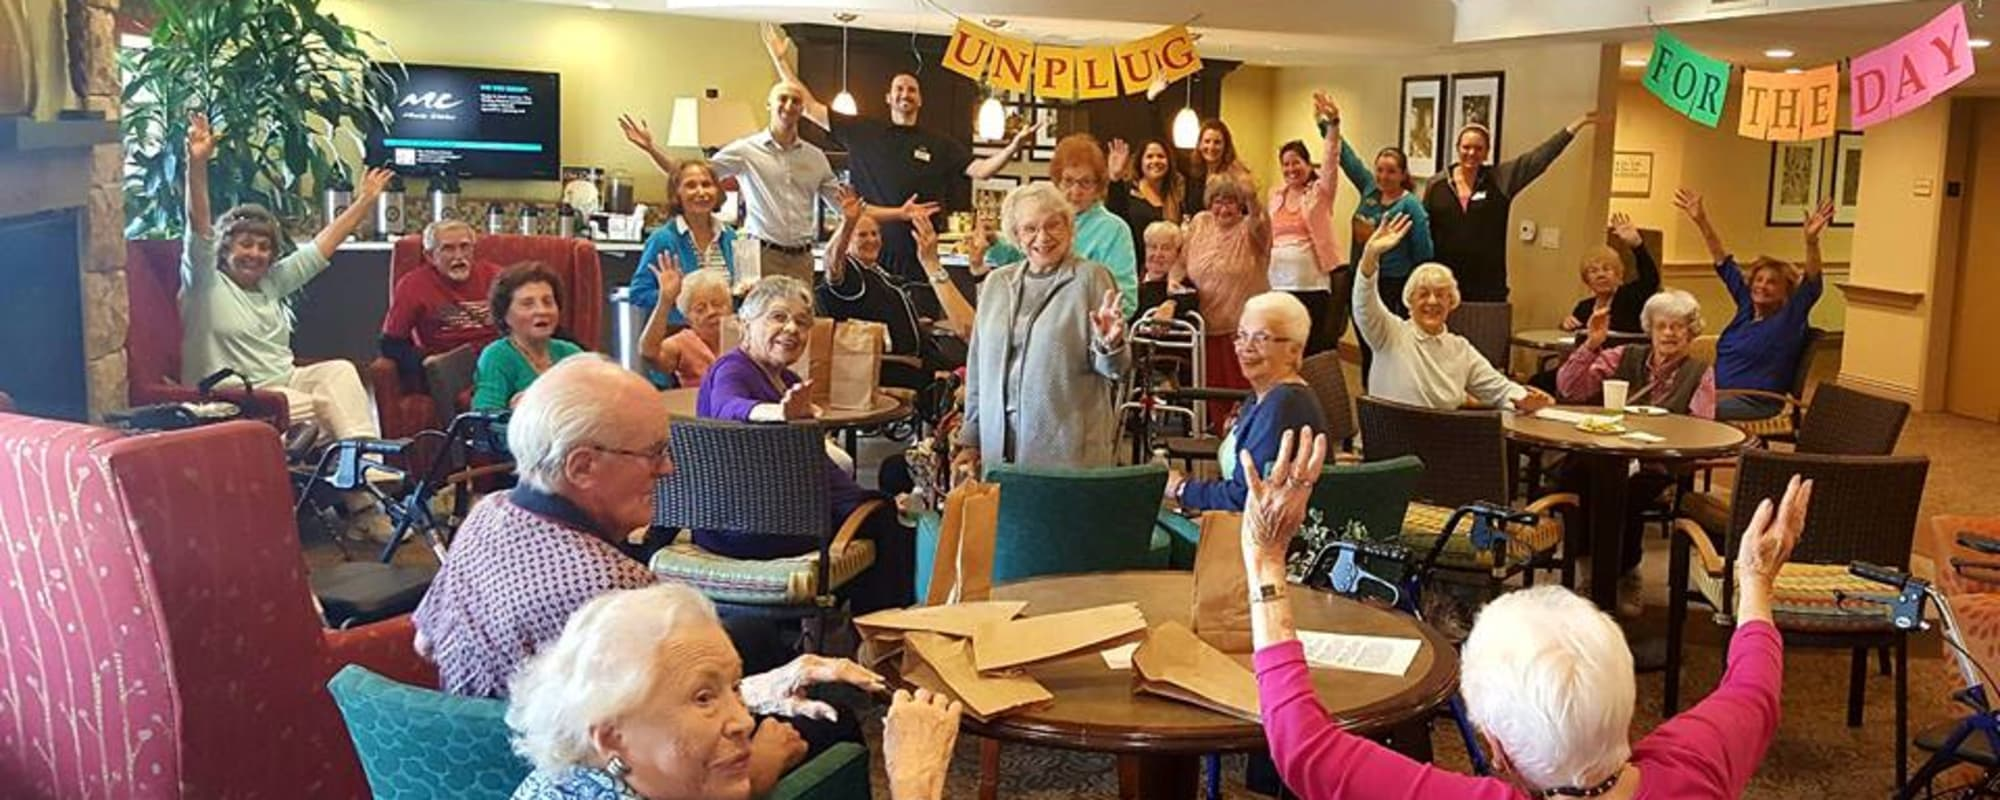 Residents celebrating at The Reserve at Thousand Oaks in Thousand Oaks, California